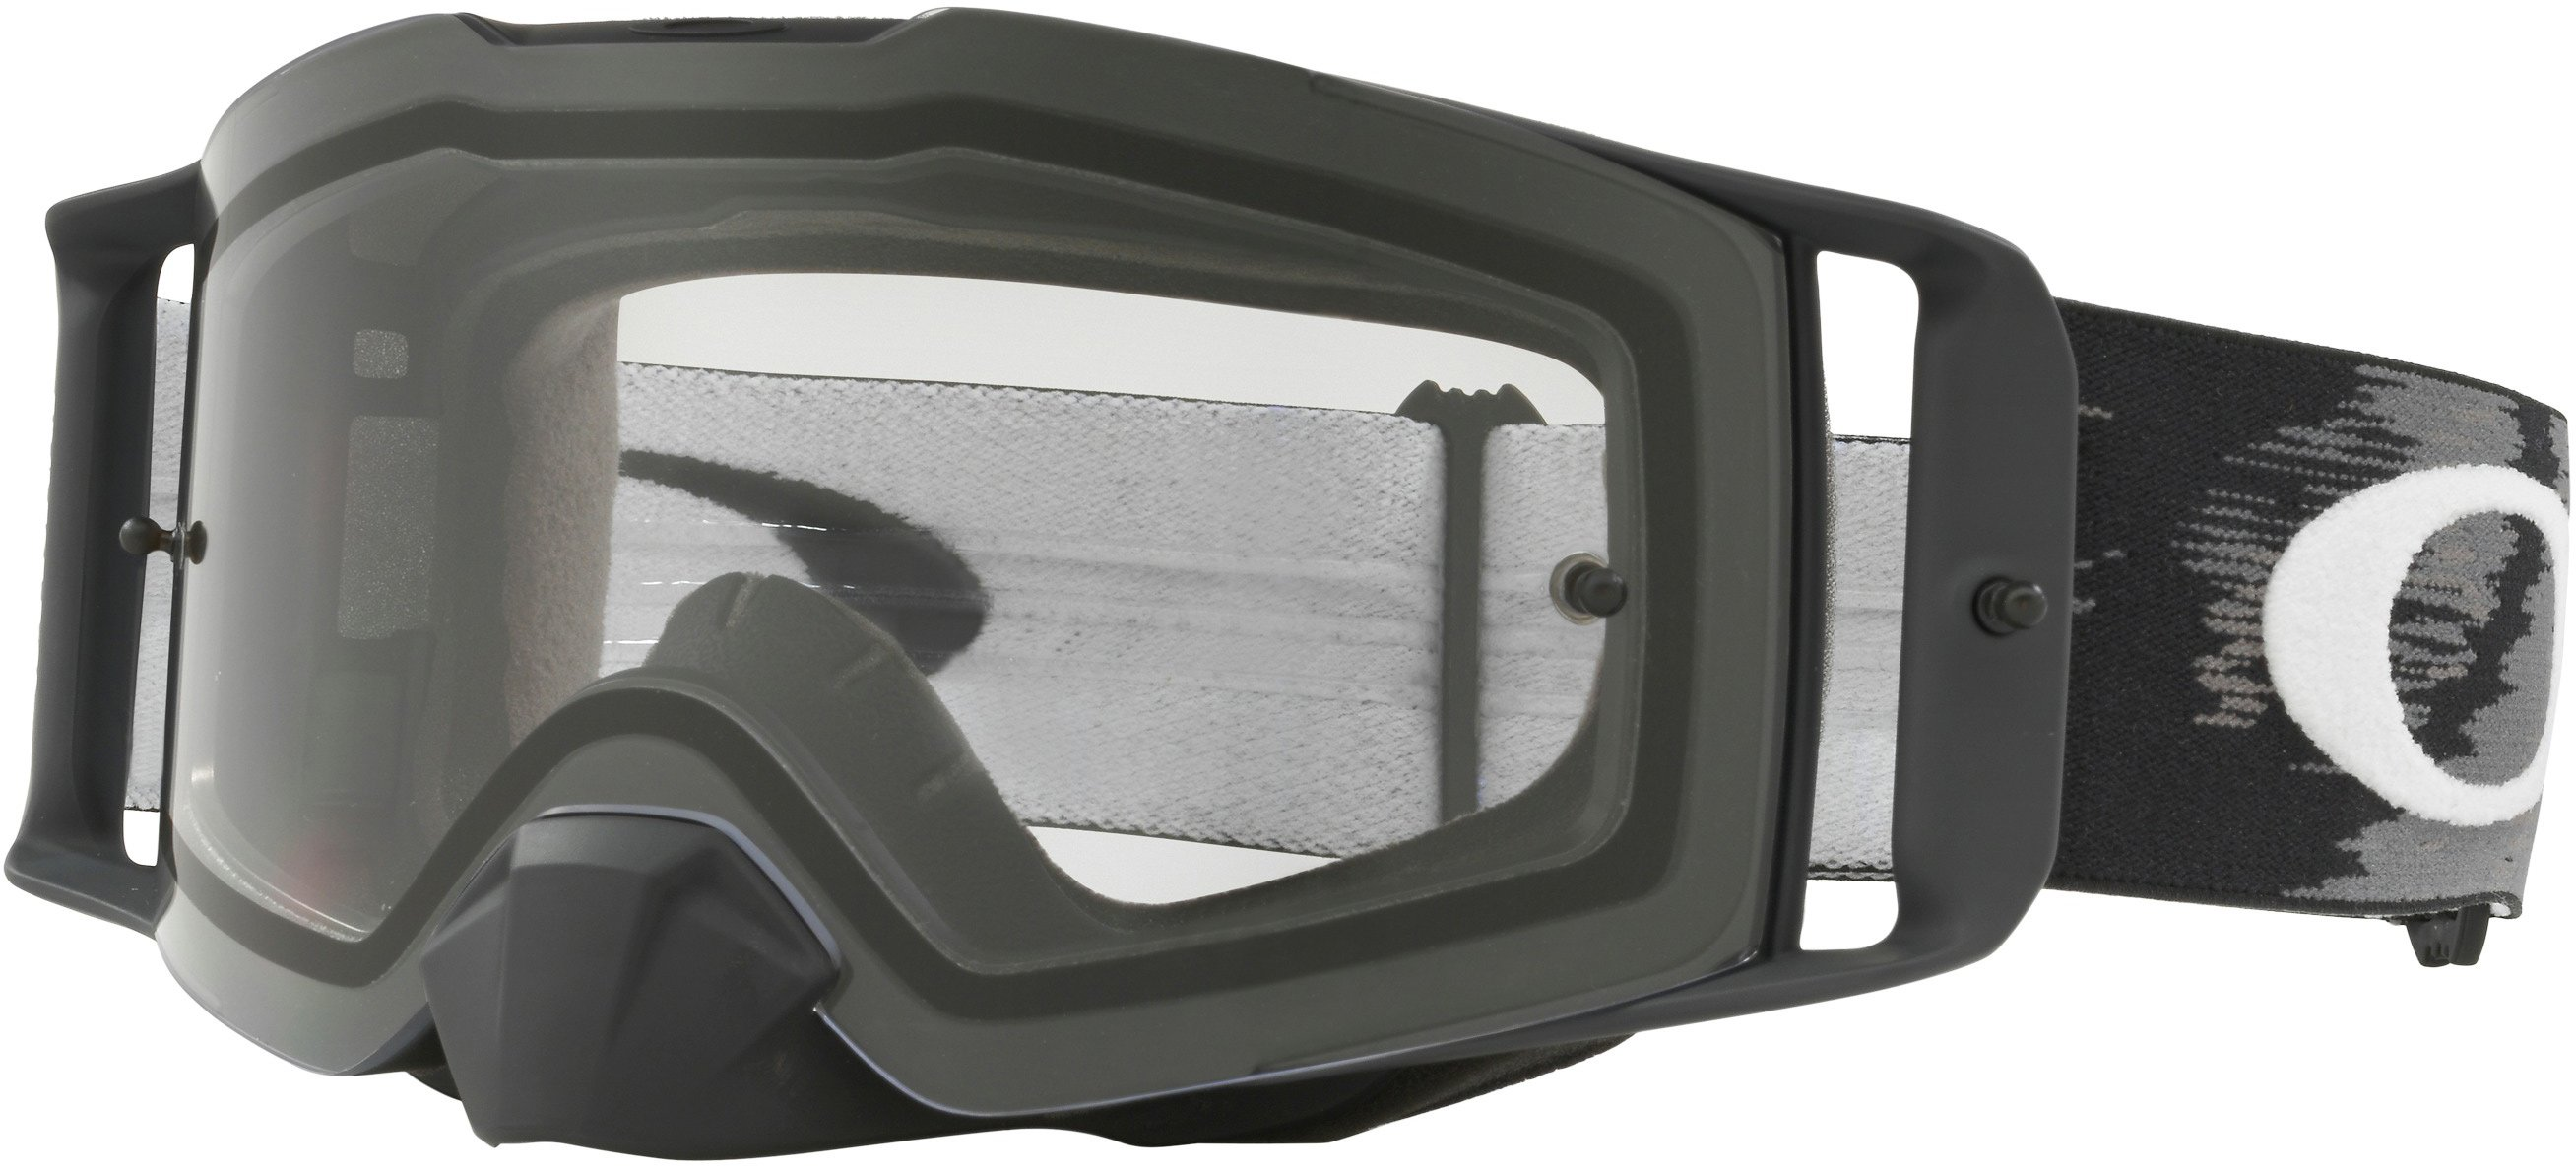 923a1dce1 Oakley Front Line MX Goggle